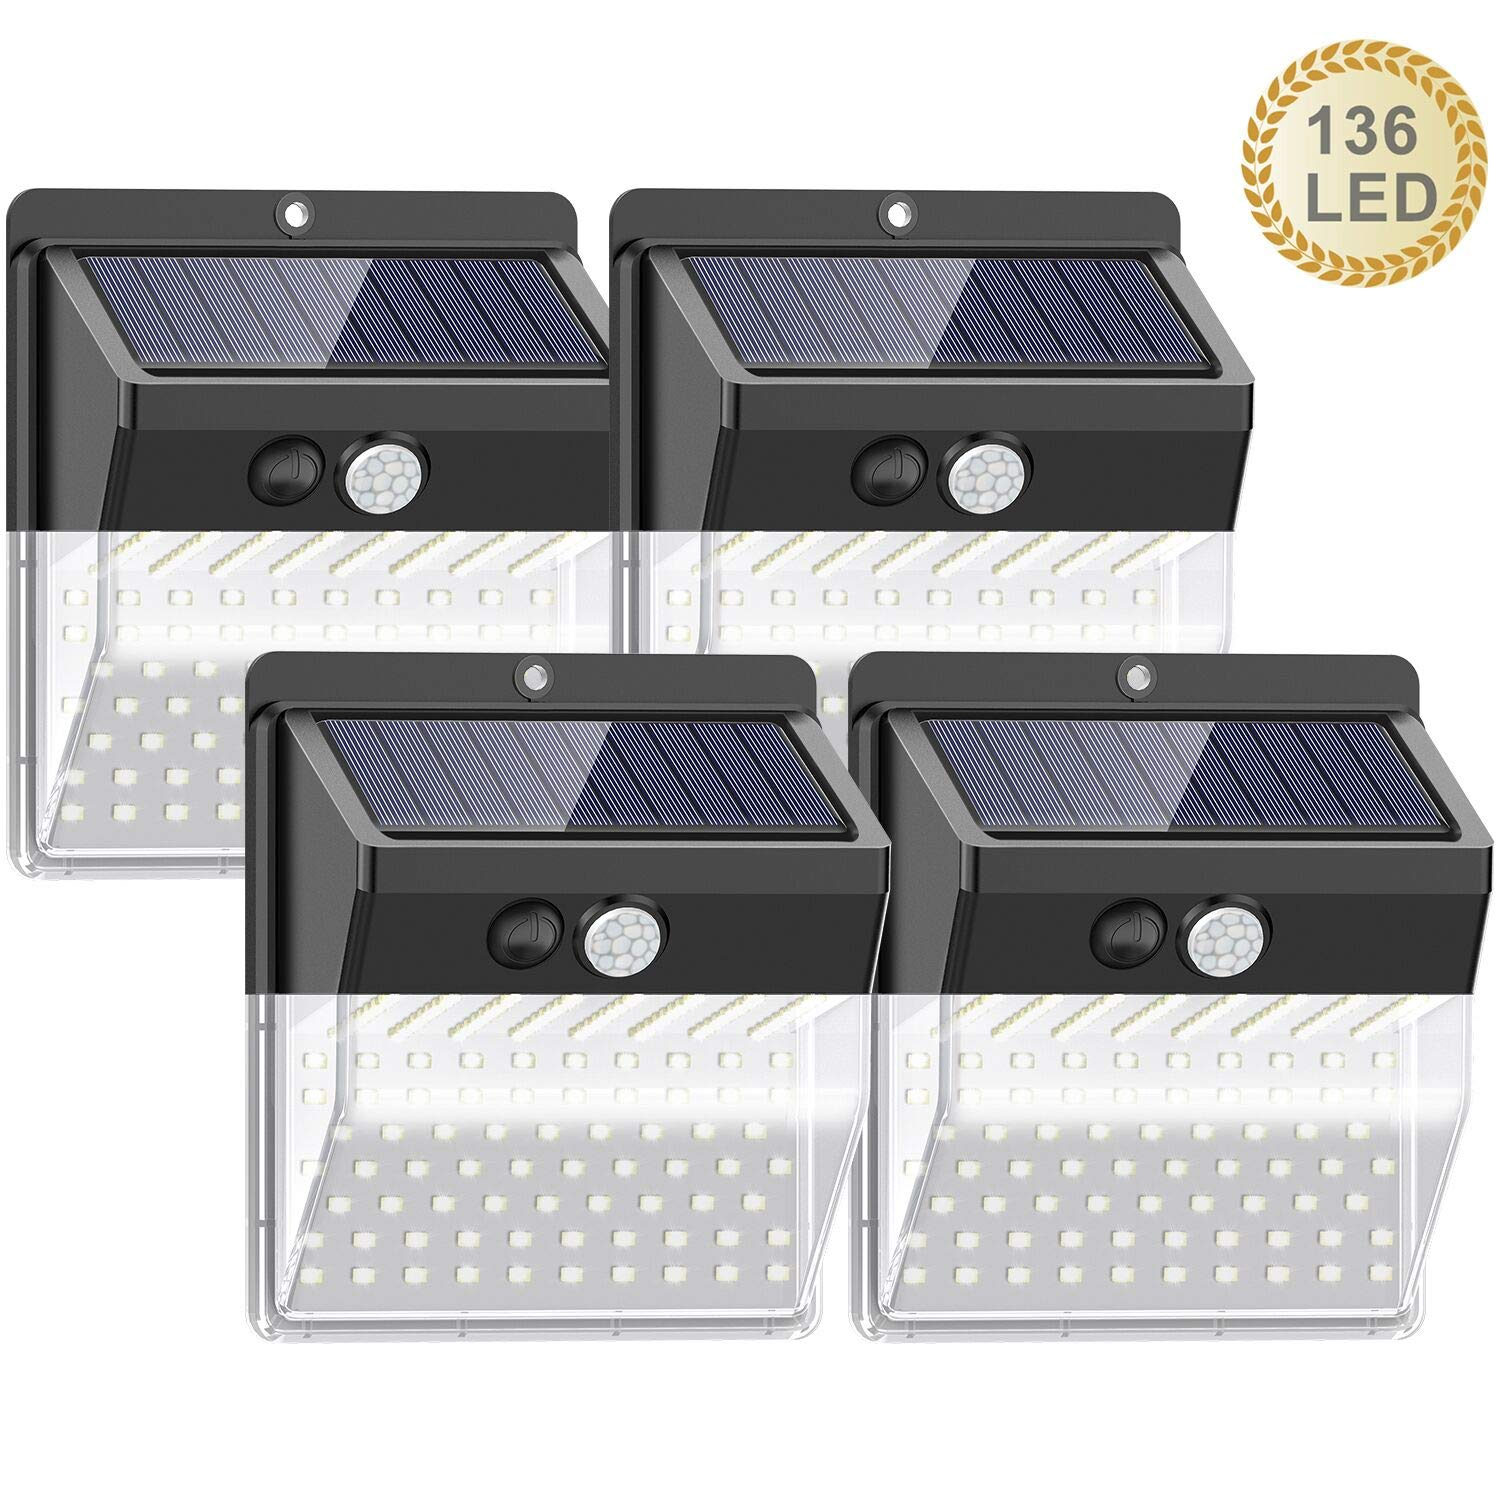 【136 LED New Version】Solar Lights Outdoor, SEZAC Solar Security Outdoor Lights 270° Wide Angle Lighting Solar Motion Sensor Lights Wireless Waterproof for Yard, Garage, Deck, Pathway, Porch (4 Pack)